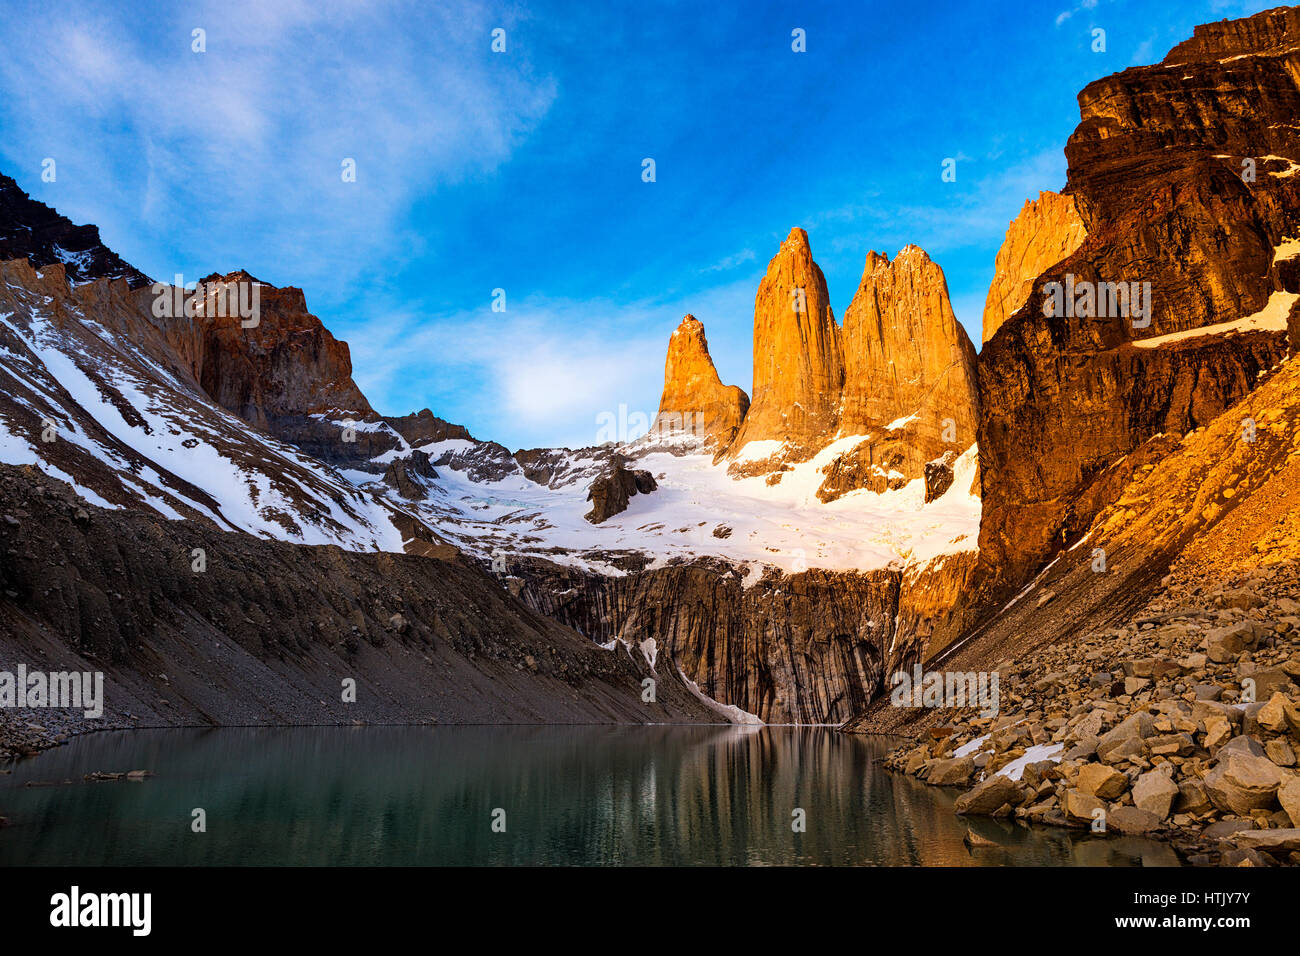 Mirador Torres at sunrise in the Torres del Paine National Park in Patagonia, Chile, South America - Stock Image